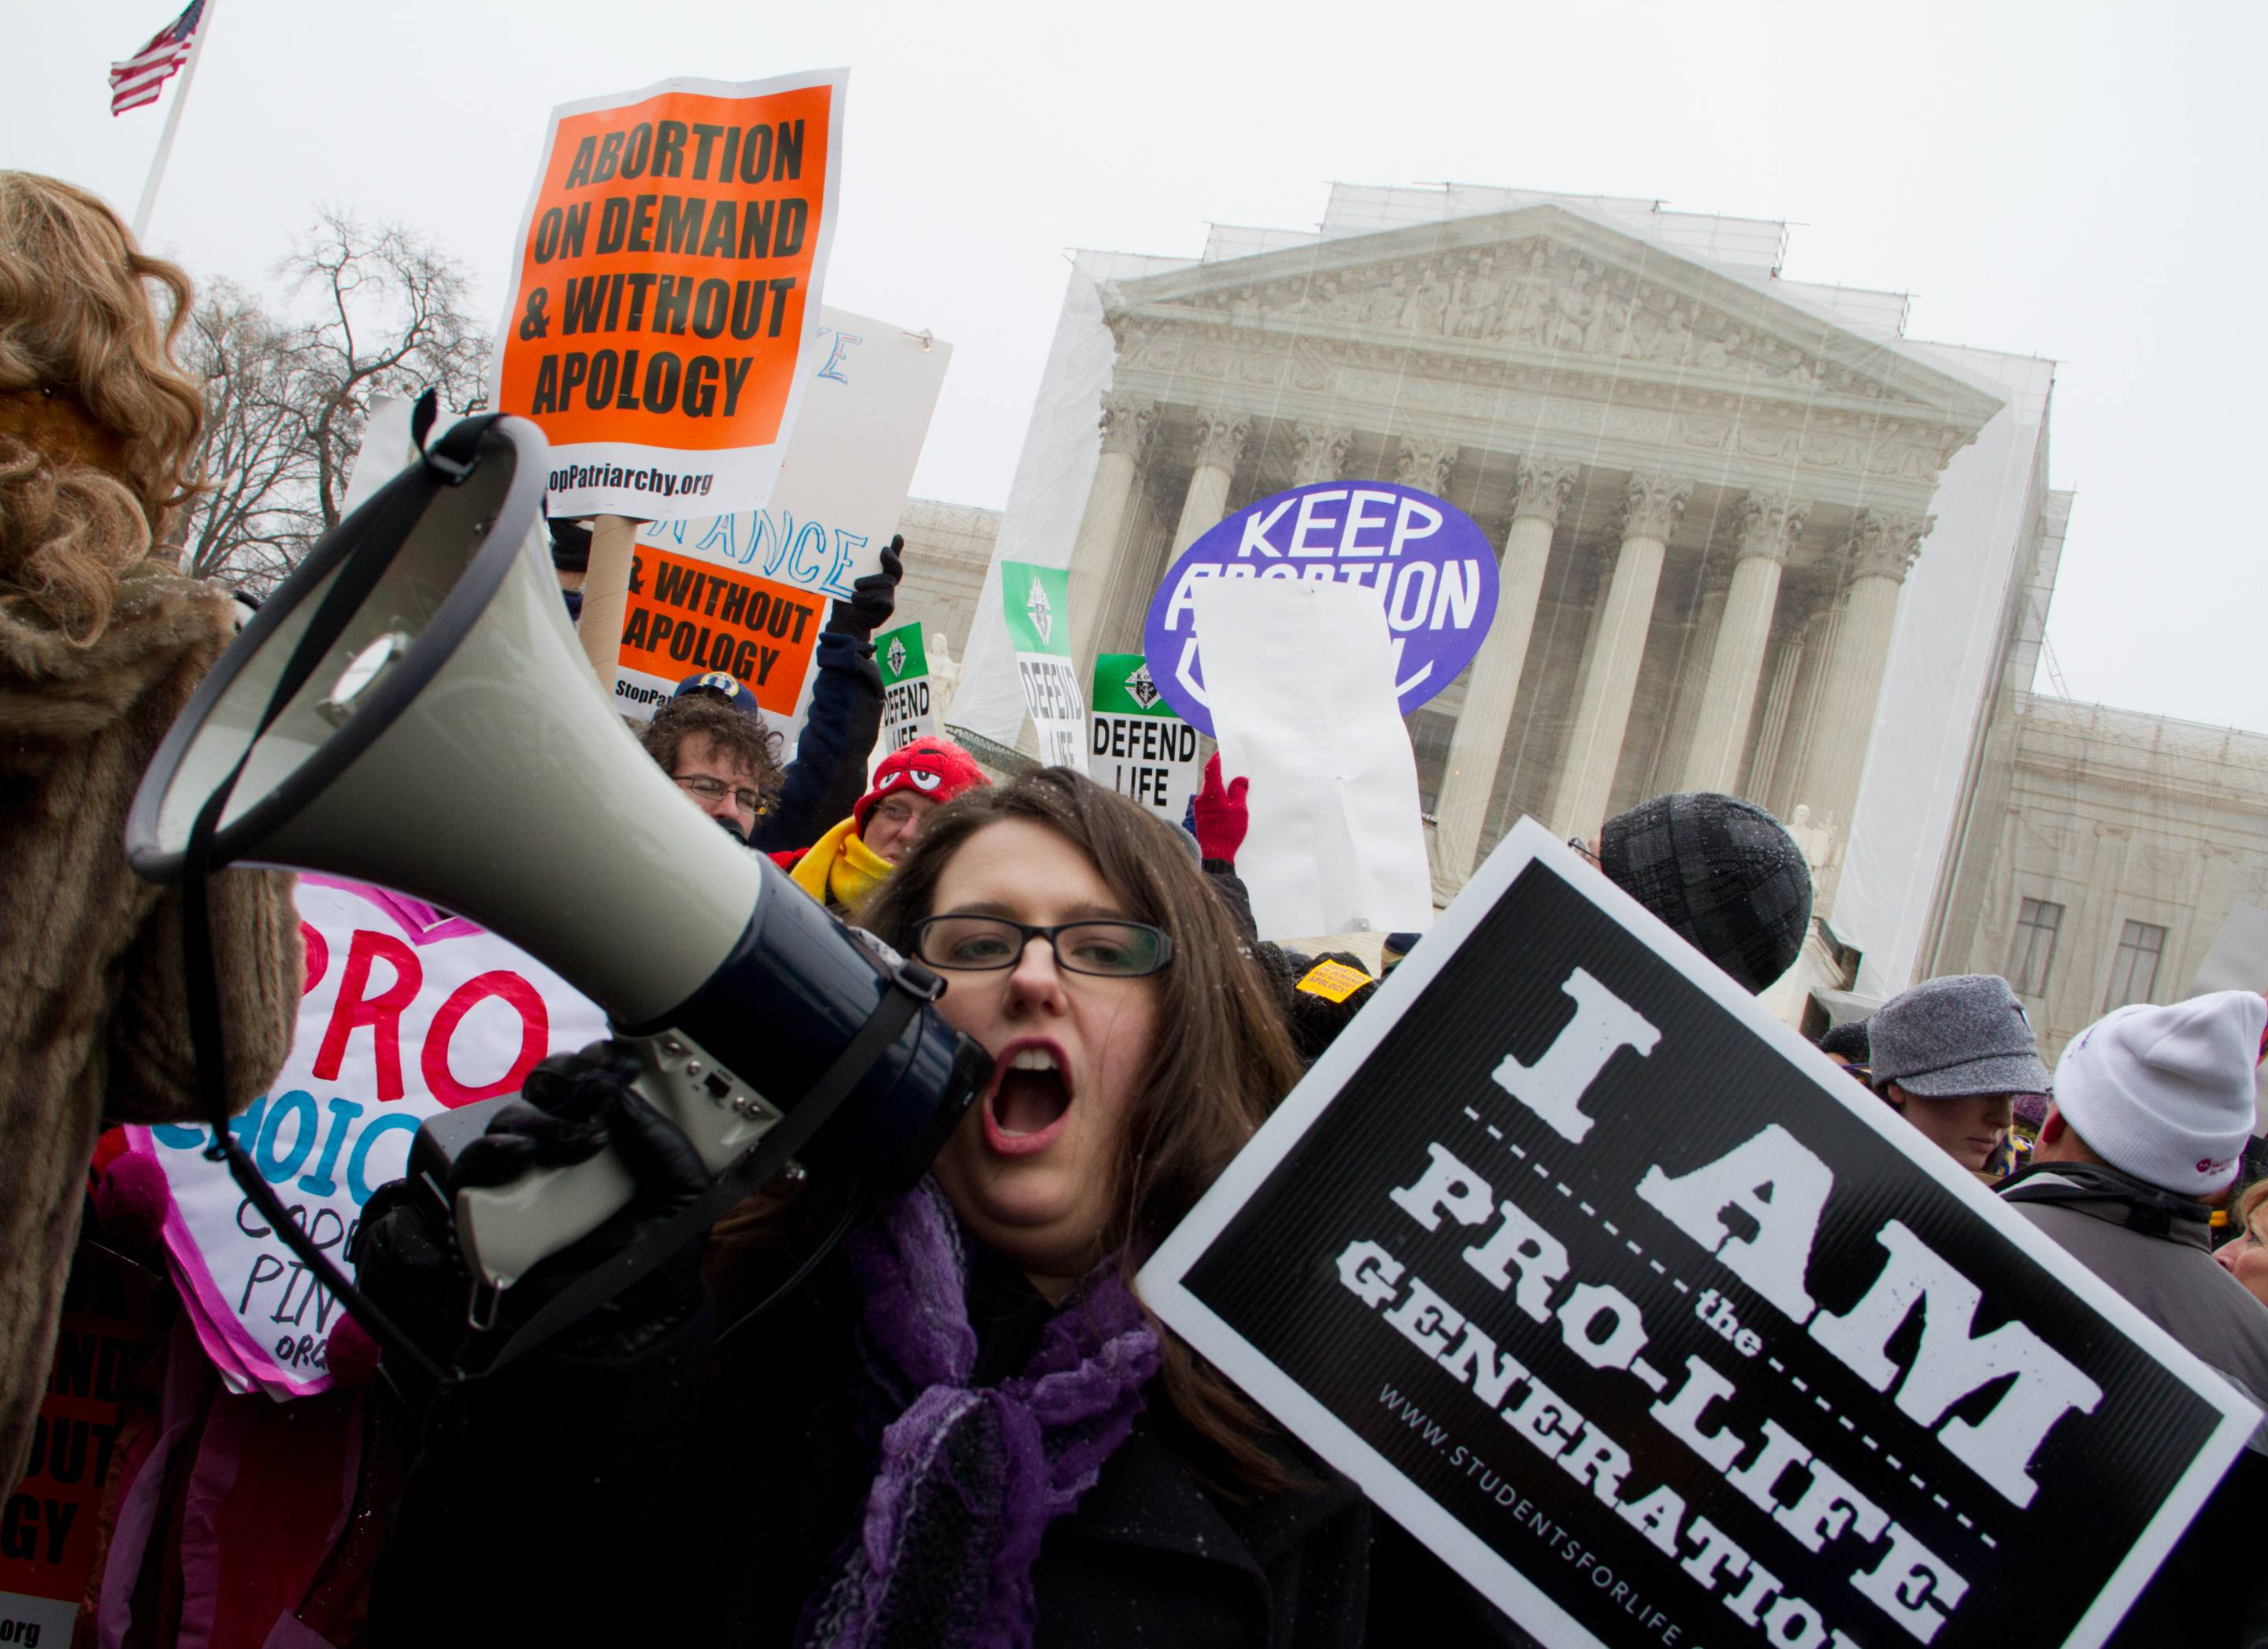 Protesters converged on the Supreme Court to protest